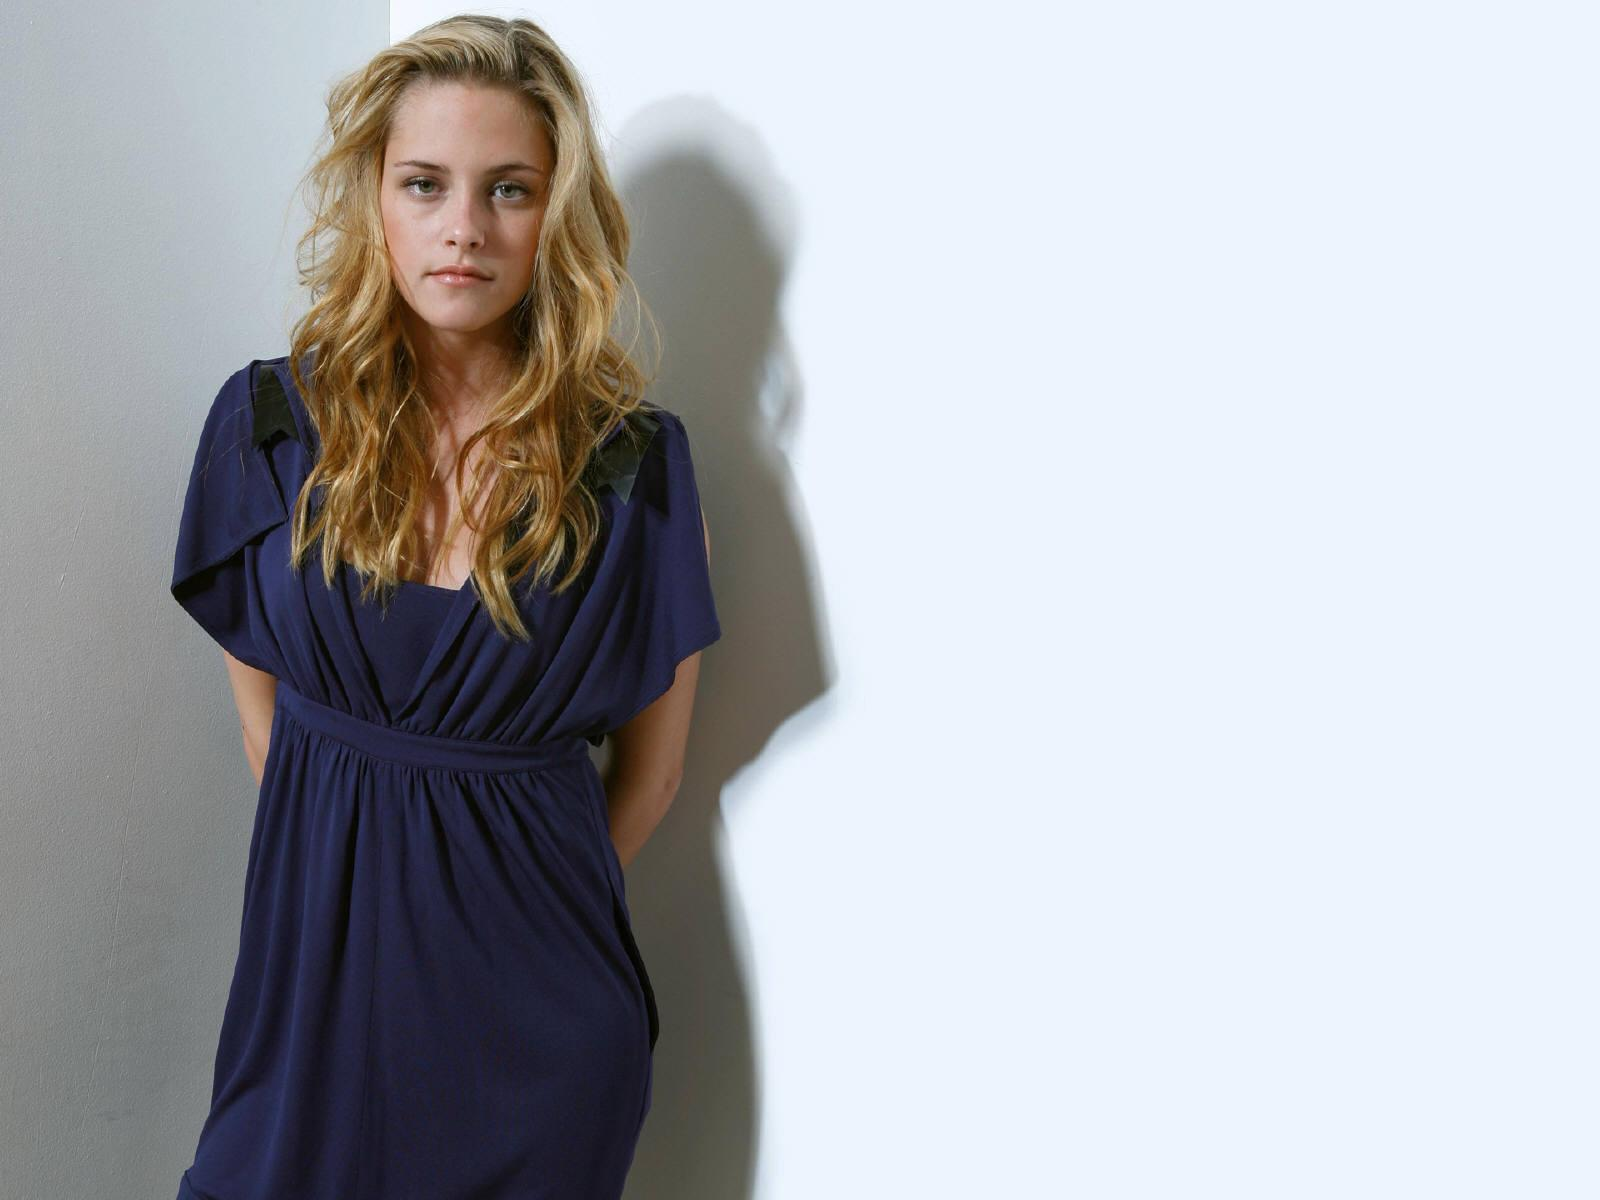 Wallpaper Cinema Video Kristen Stewart superbe blonde robe bleue